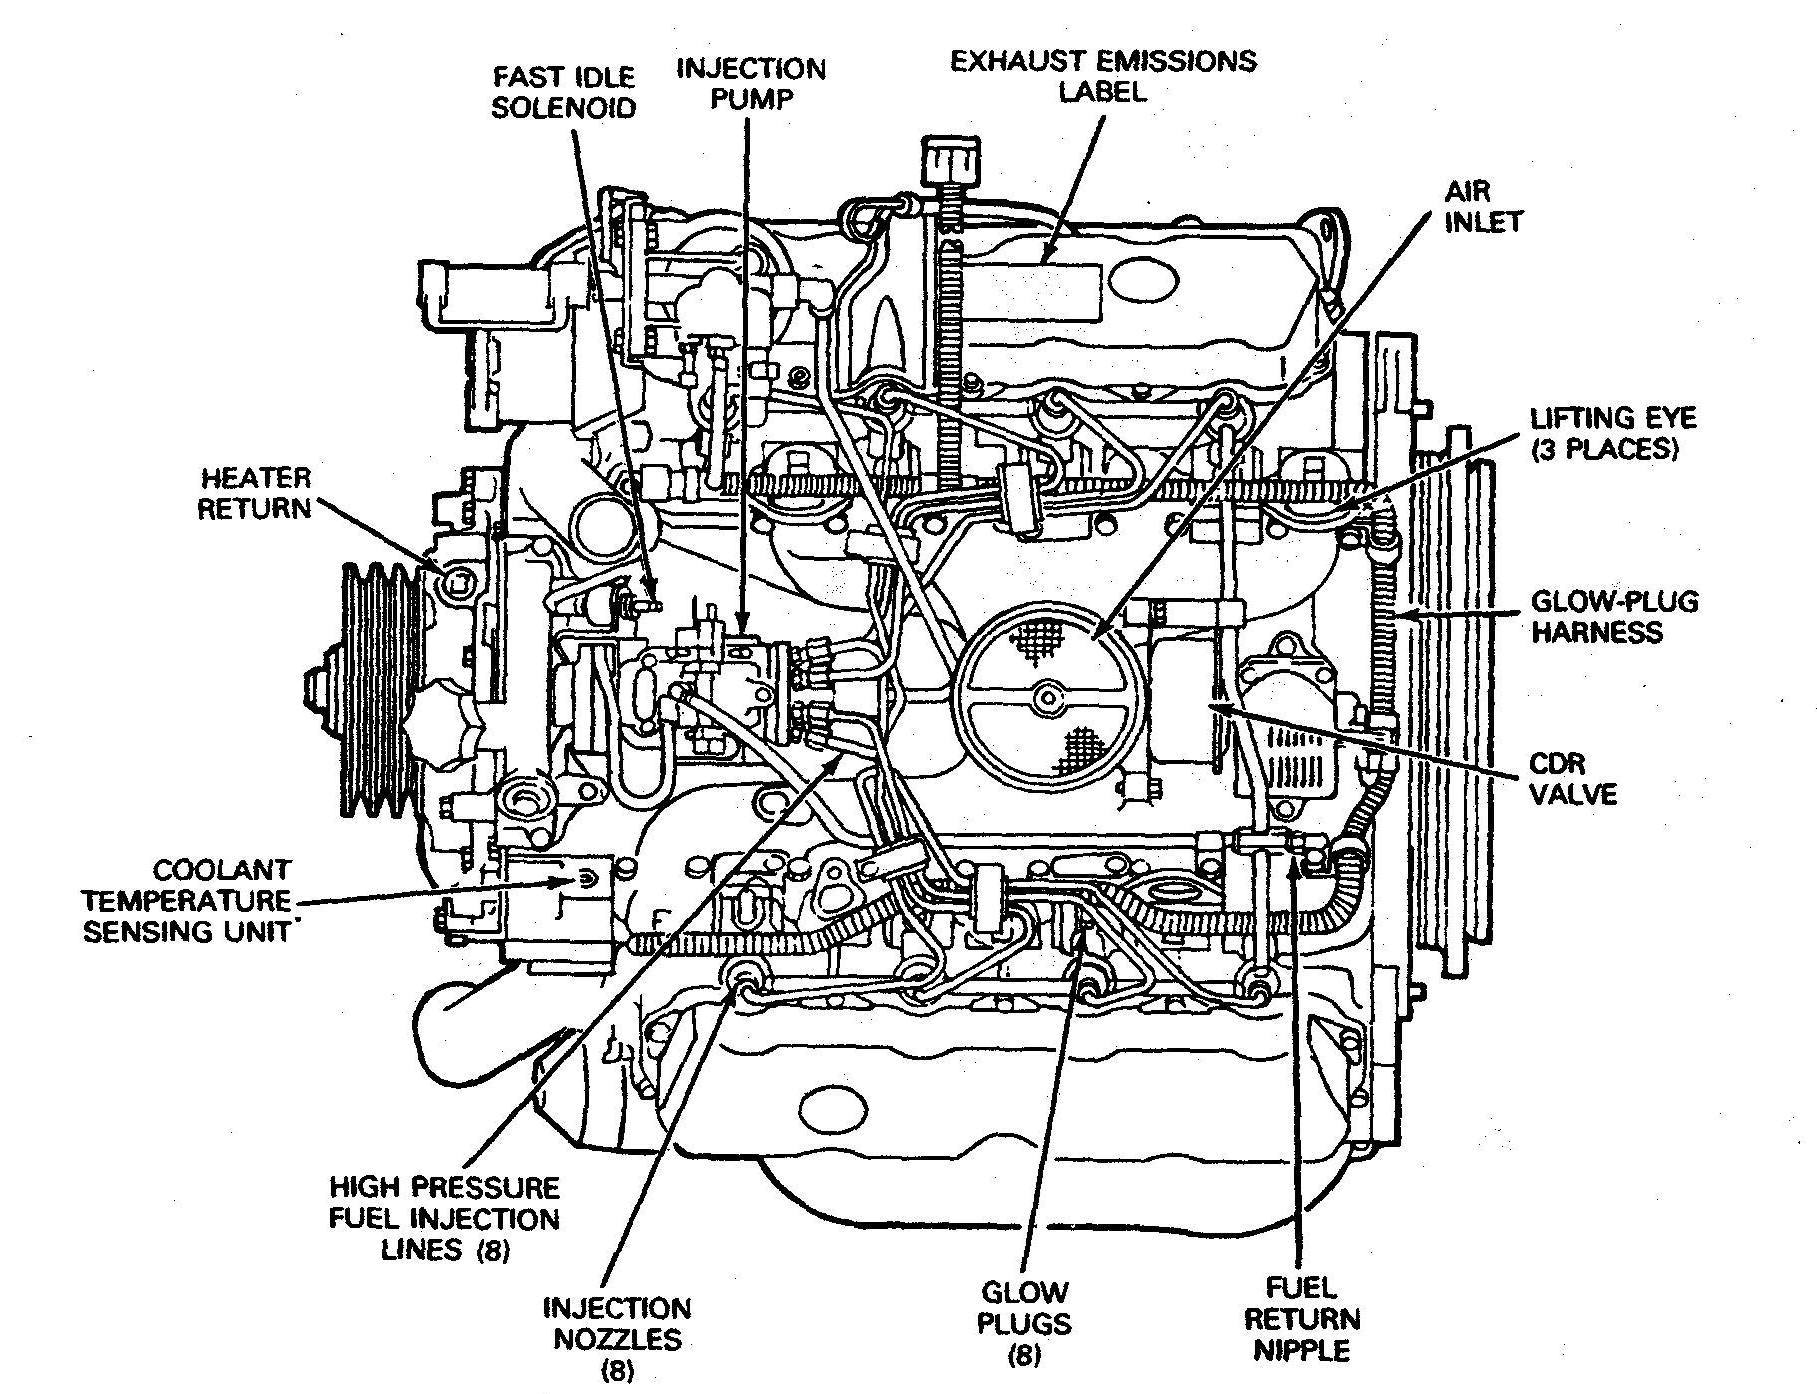 1972 volkswagen engine diagram